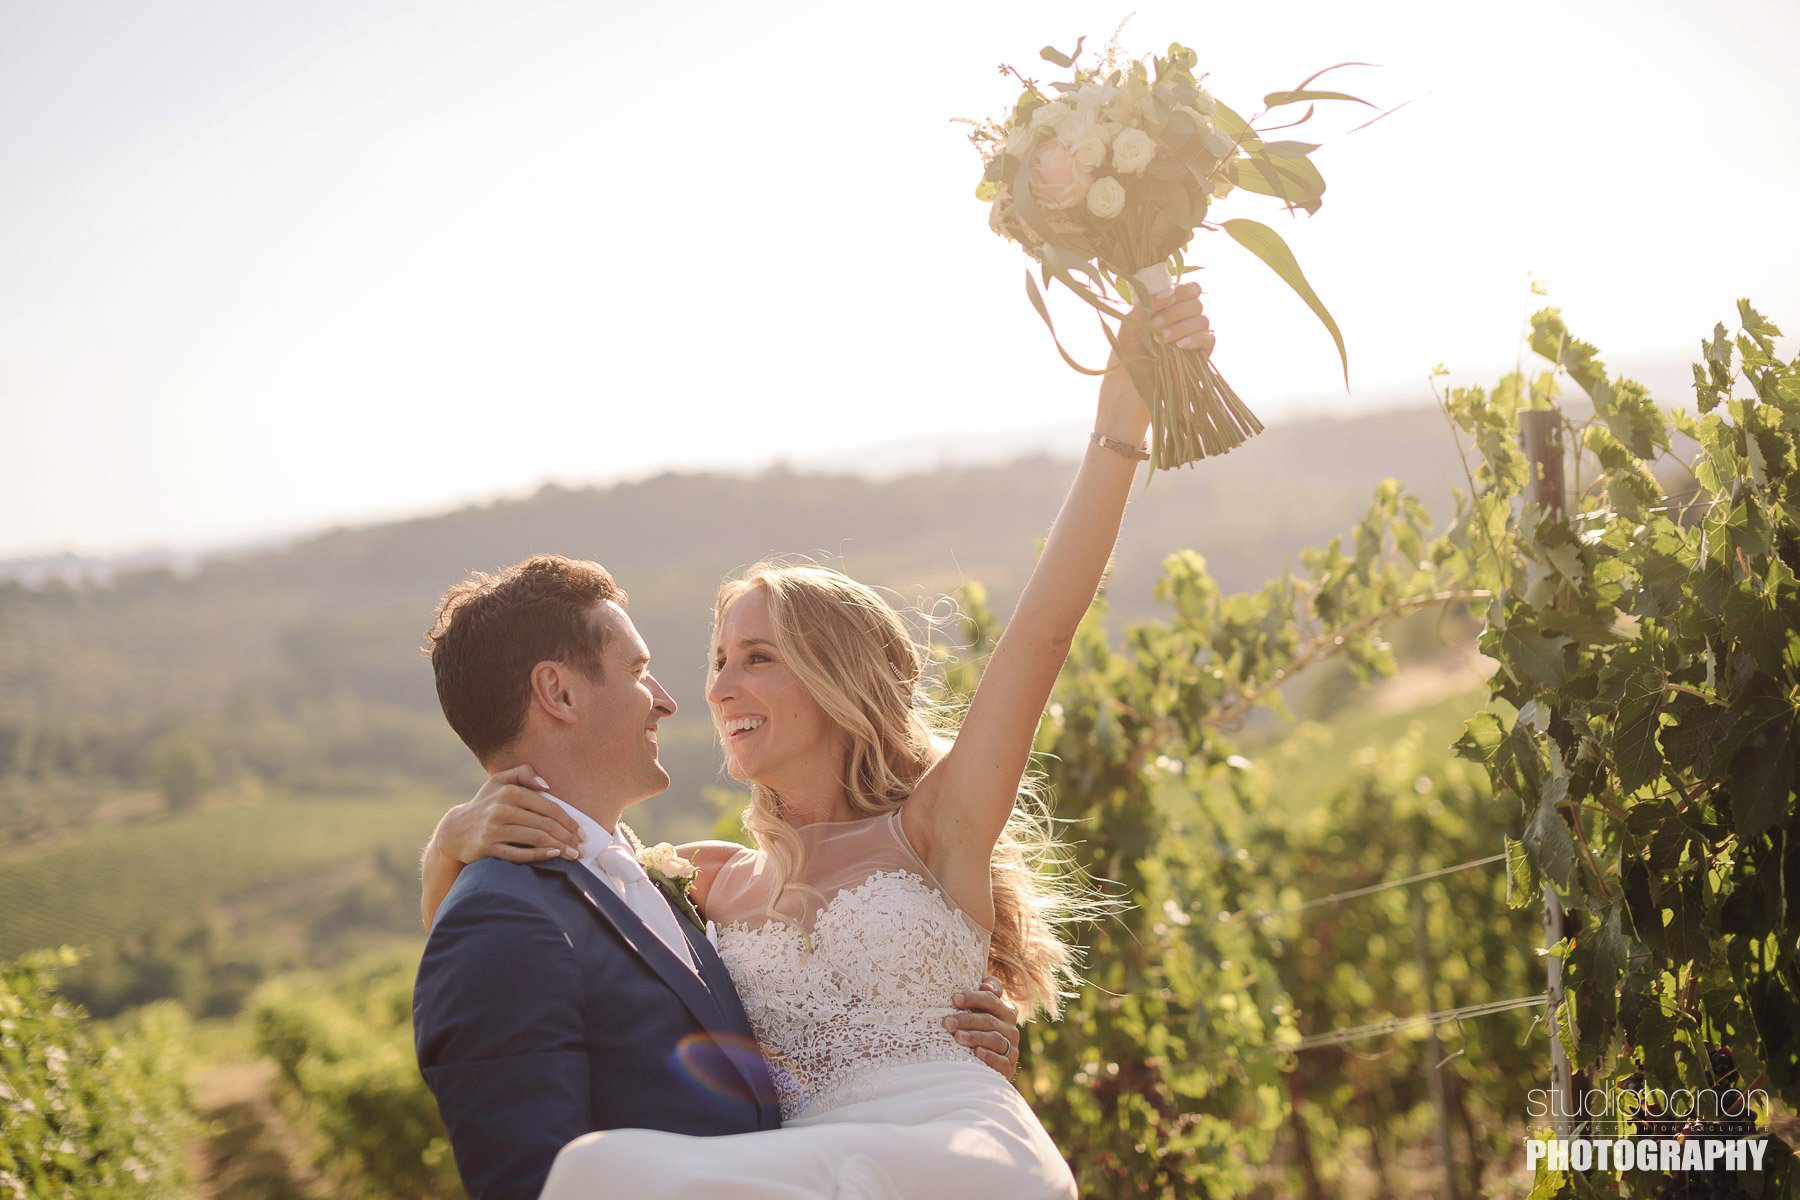 Bride and groom are sharing some lovely moment in a Tuscan vineyard into the countryside of Chianti